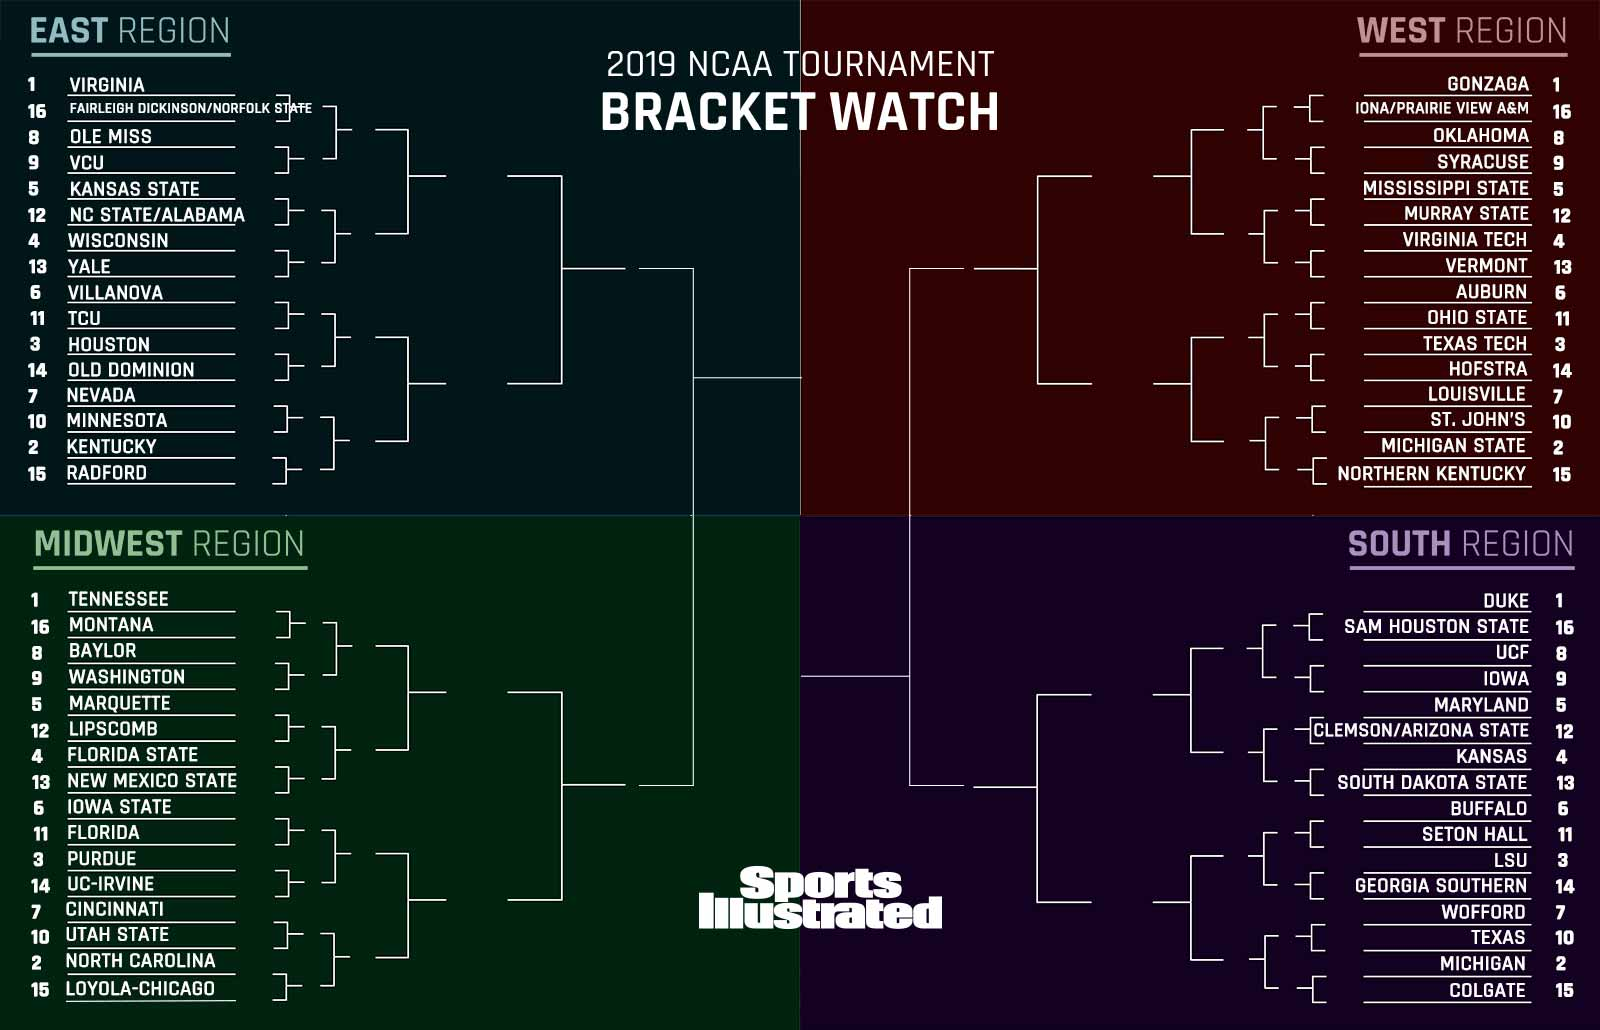 March Madness 2019: NCAA tournament bracket projections, seeds, bubble teams